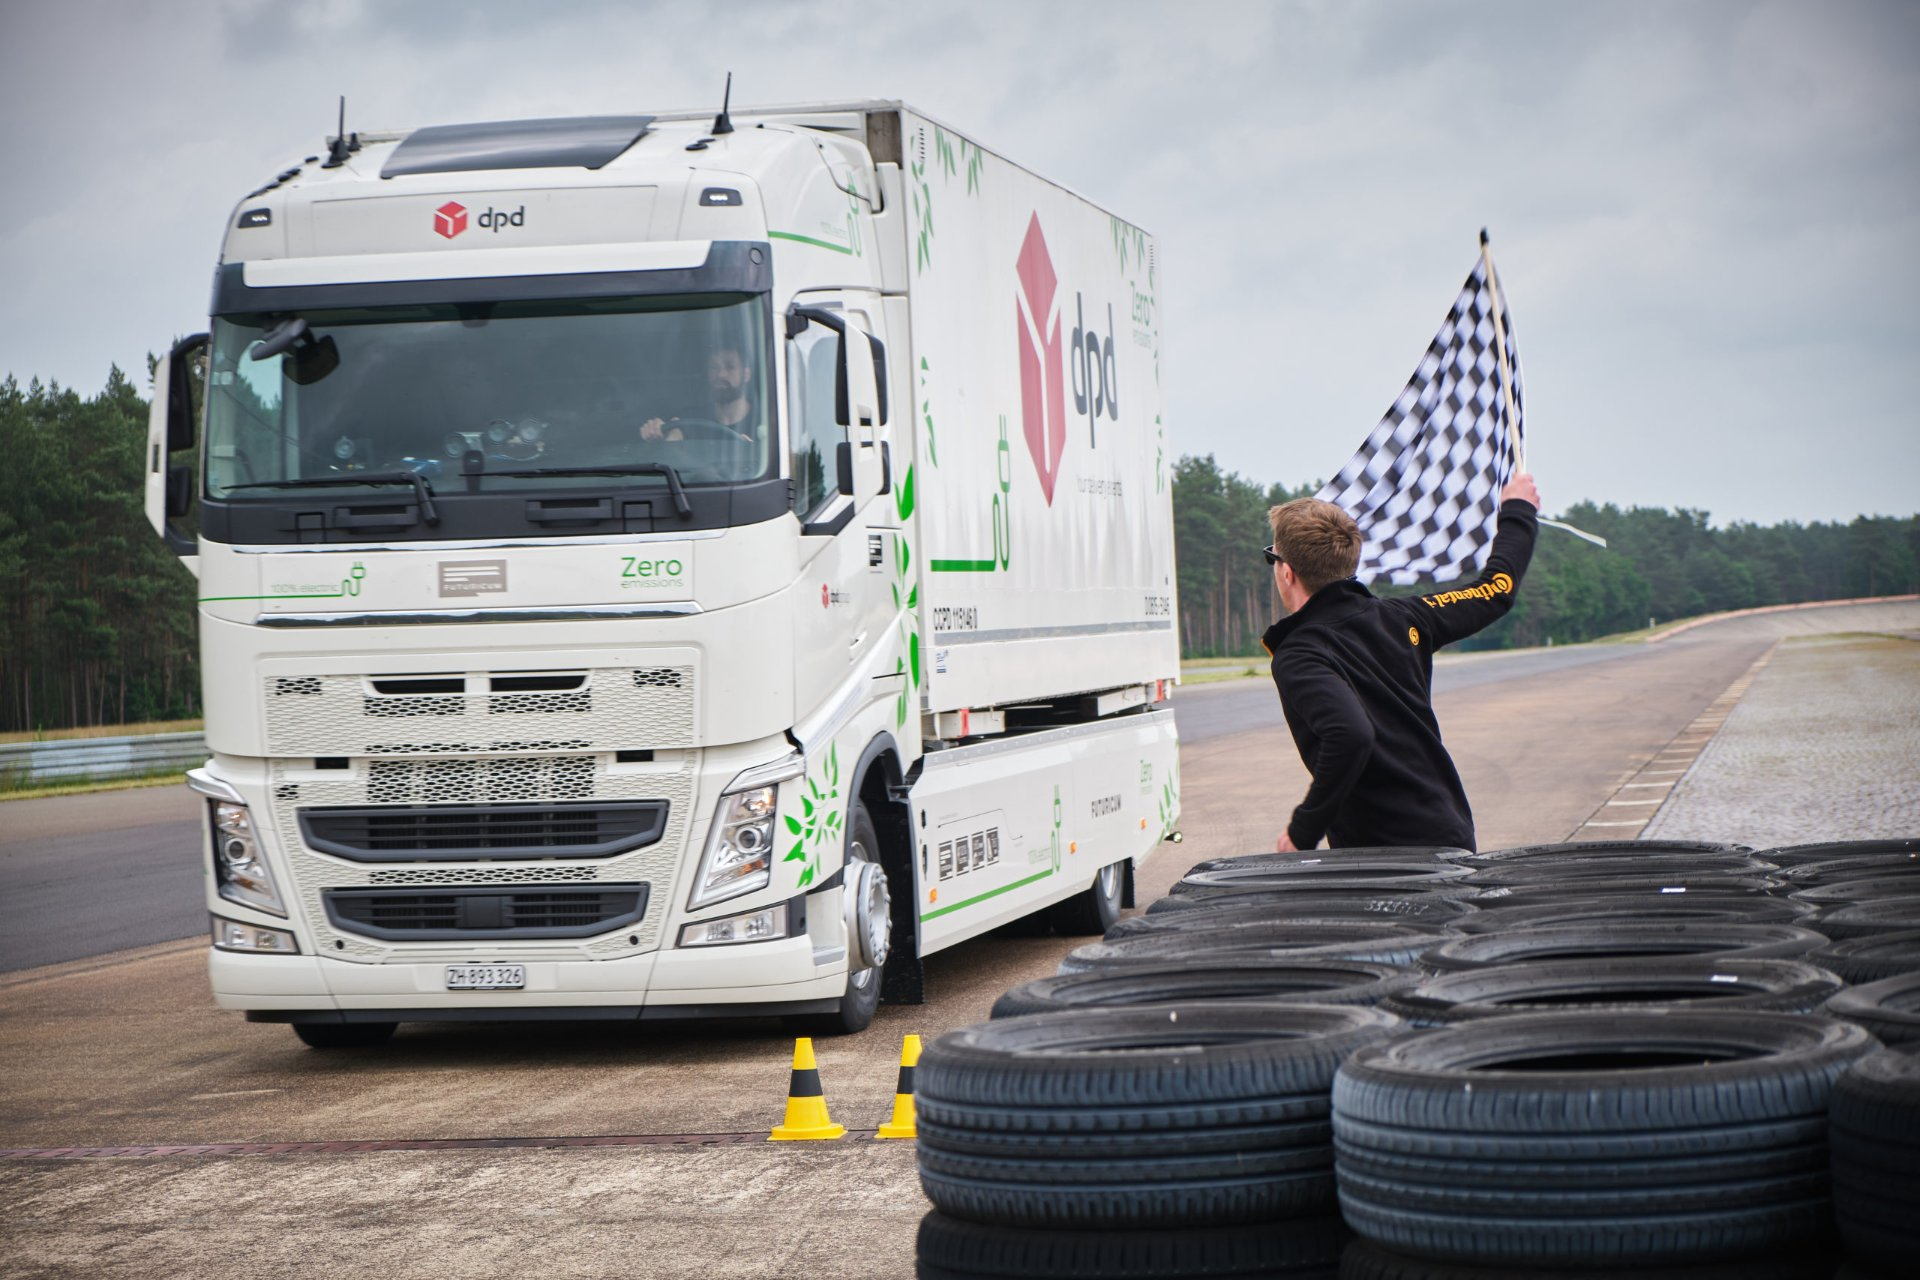 Electric rigid lorry secures Guinness World Record after going over 1,000km without recharging